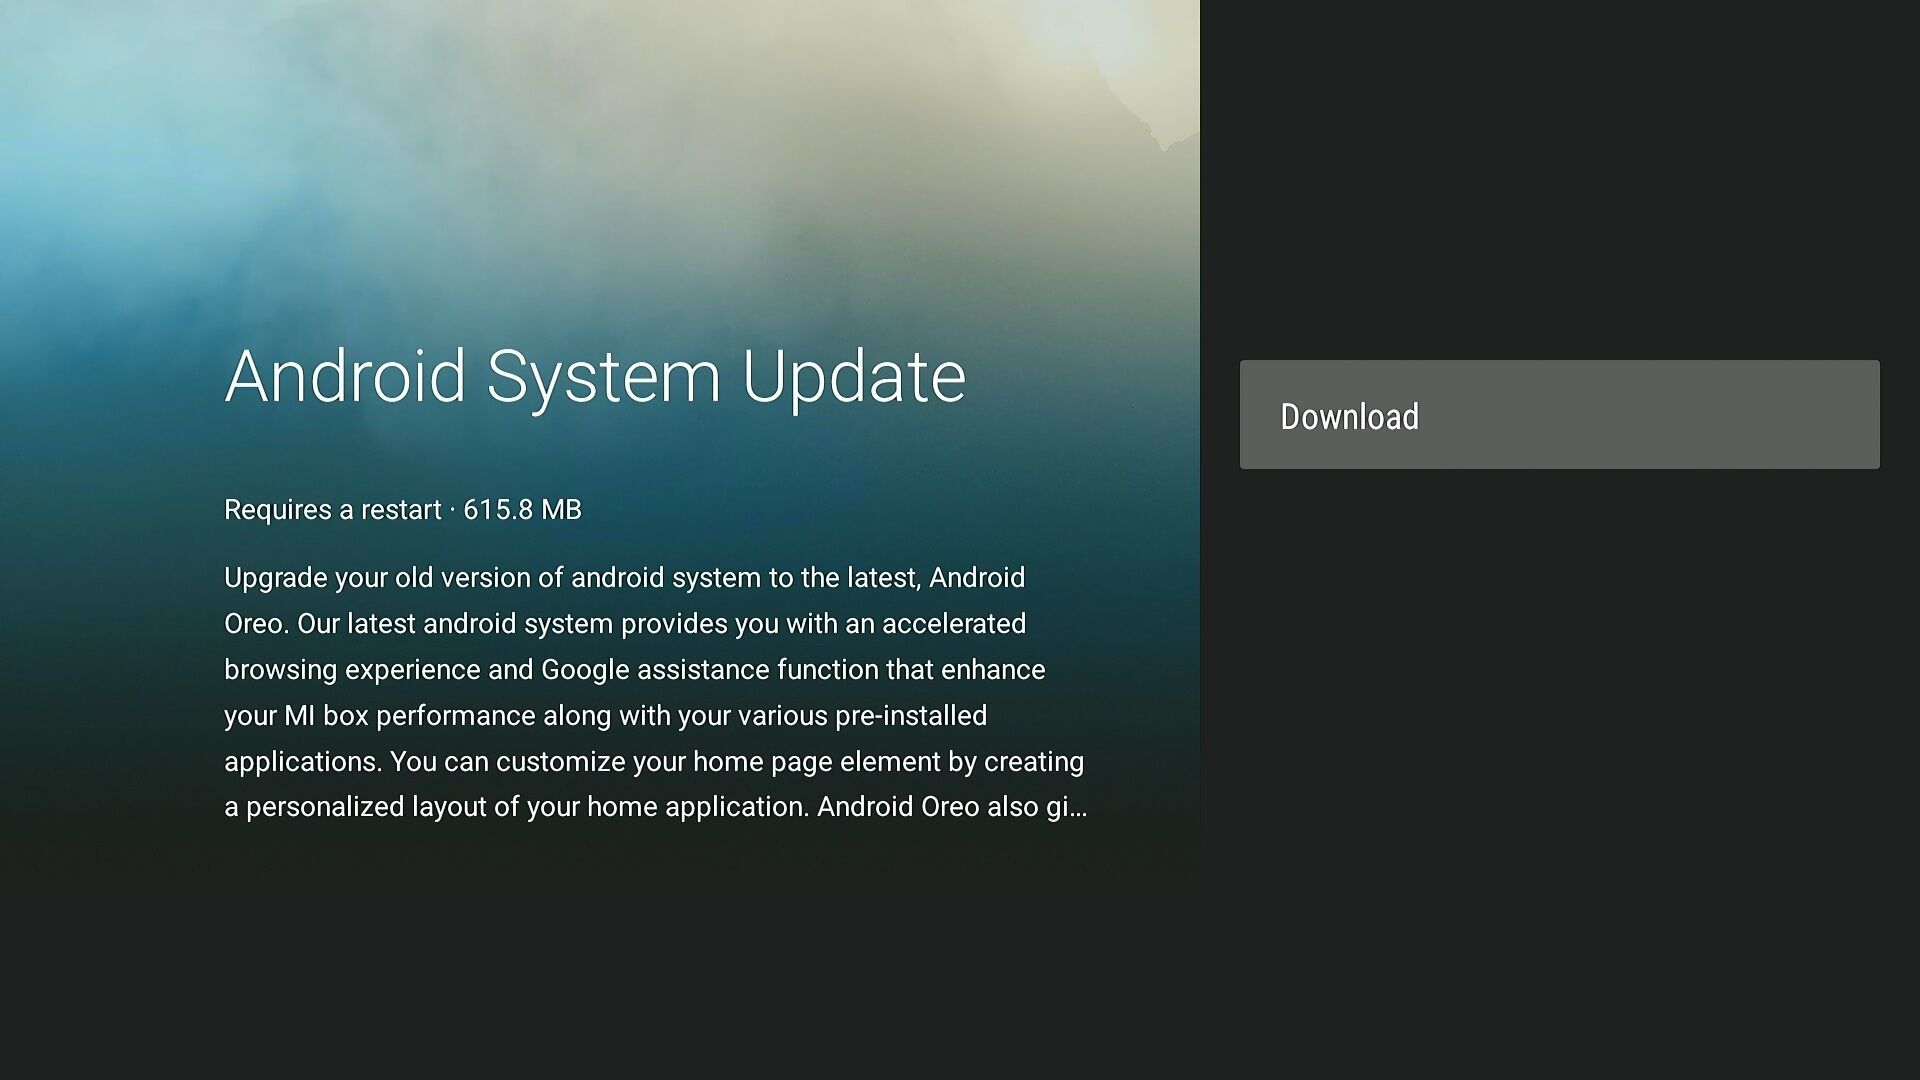 The Xiaomi Mi Box is now in the process of receiving its update to Android 8 0